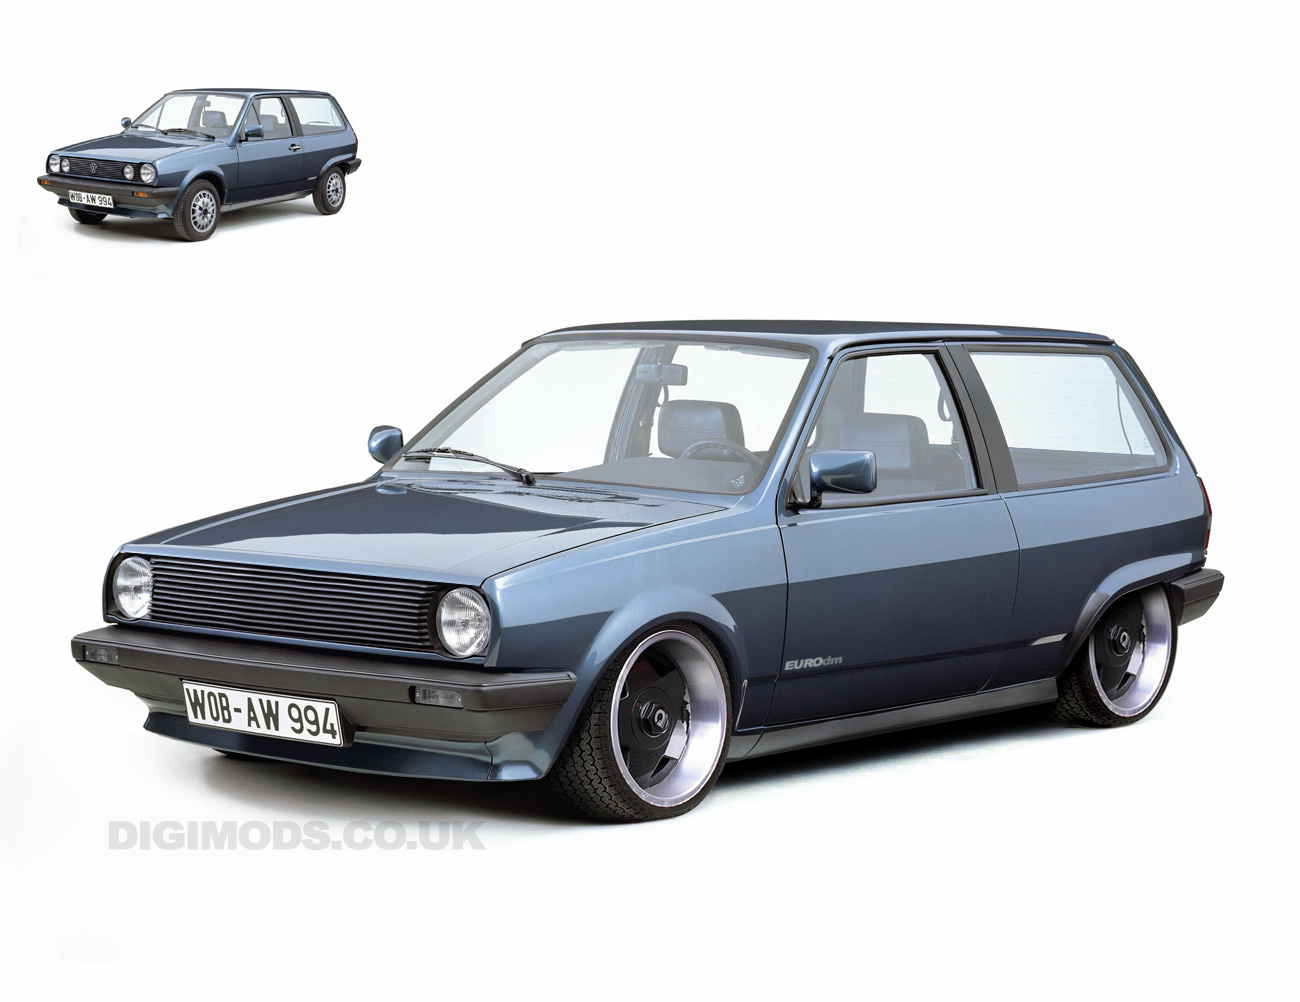 Volkswagen Golf Ii 3 Doors 1983 as well Voomeran Over Fender Kit For Mk7 Golf Gti Golf R besides Vw Chassis Guide in addition Vw Golf Mk2 Tuning Pictures besides 1980 Volkswagen Golf Pictures C9658 pi20281760. on 1985 vw scirocco